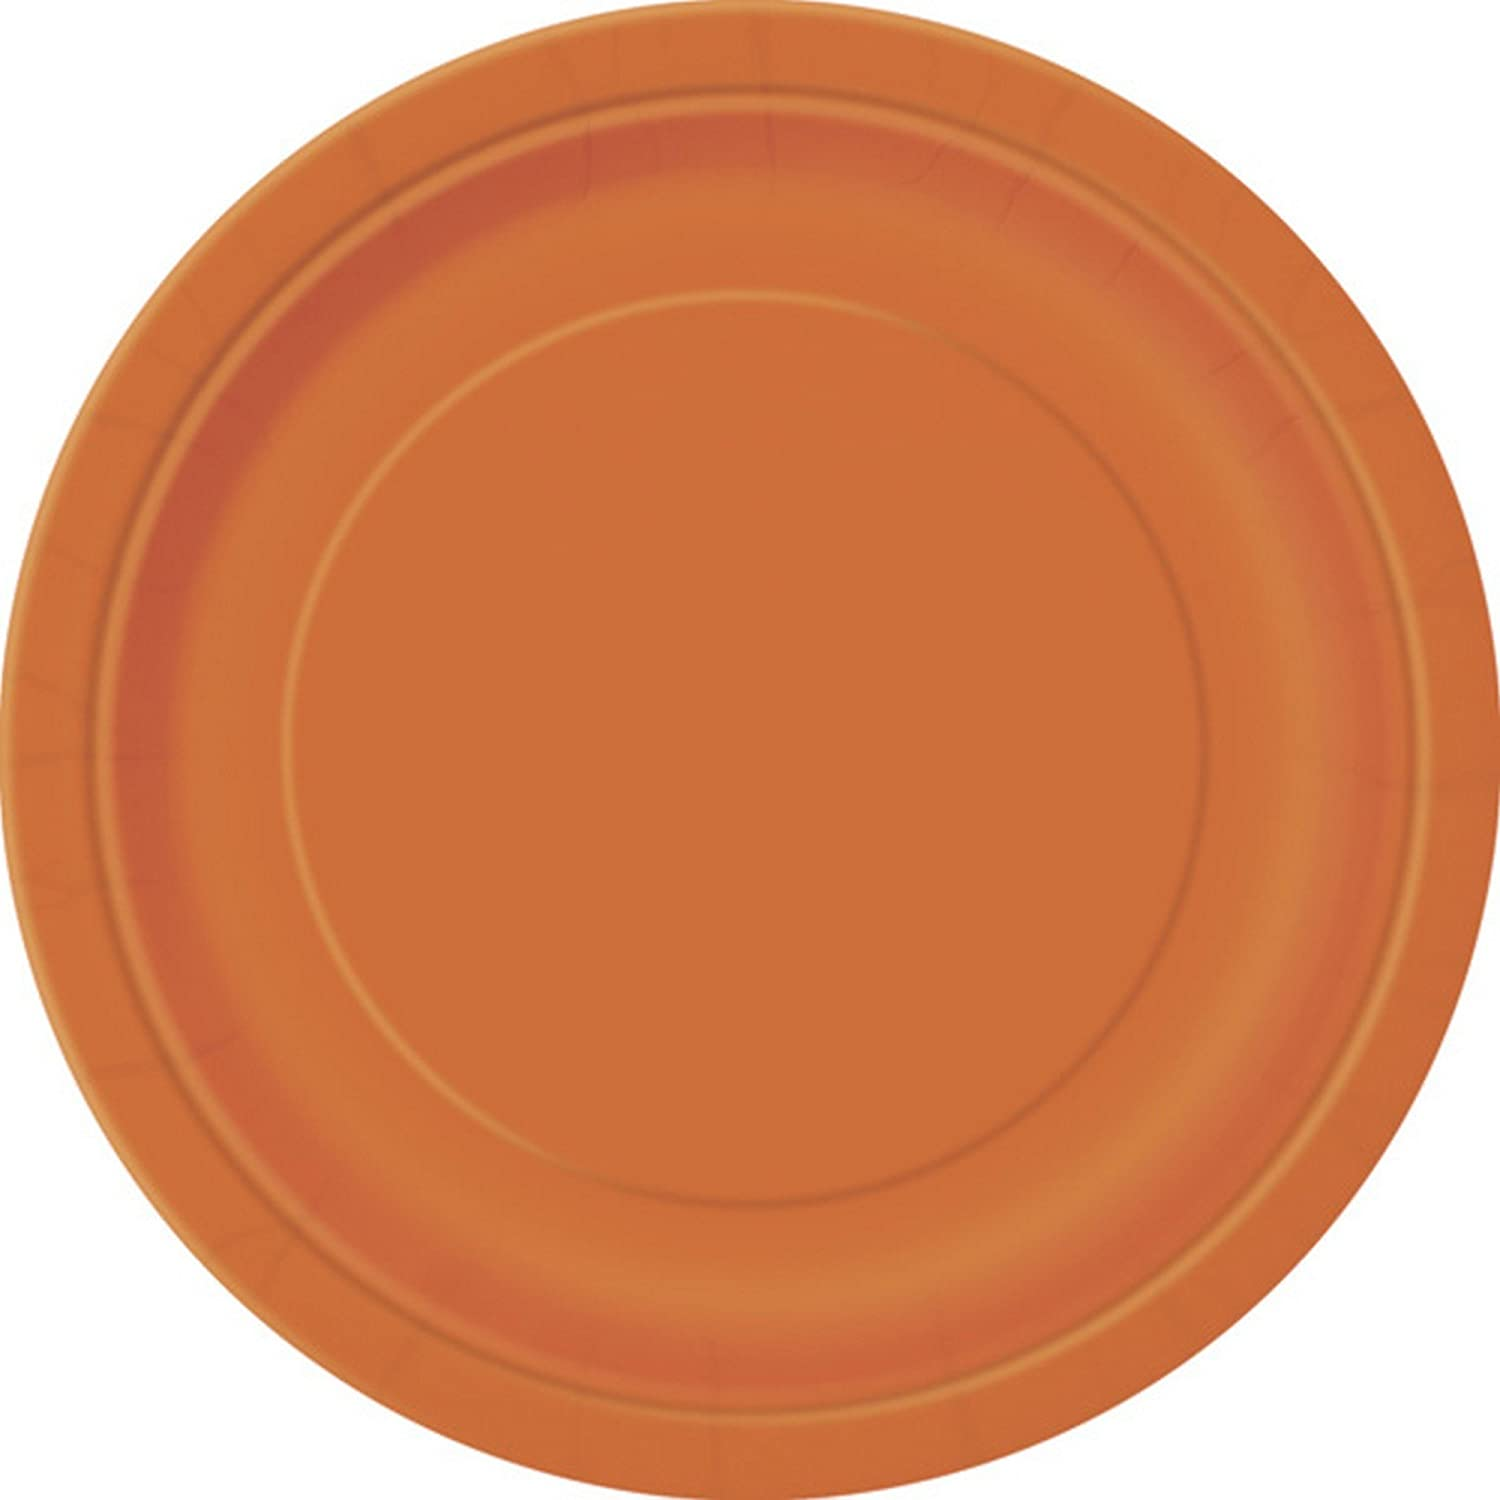 Ivory Solid Round 9 Dinner Plates 16ct